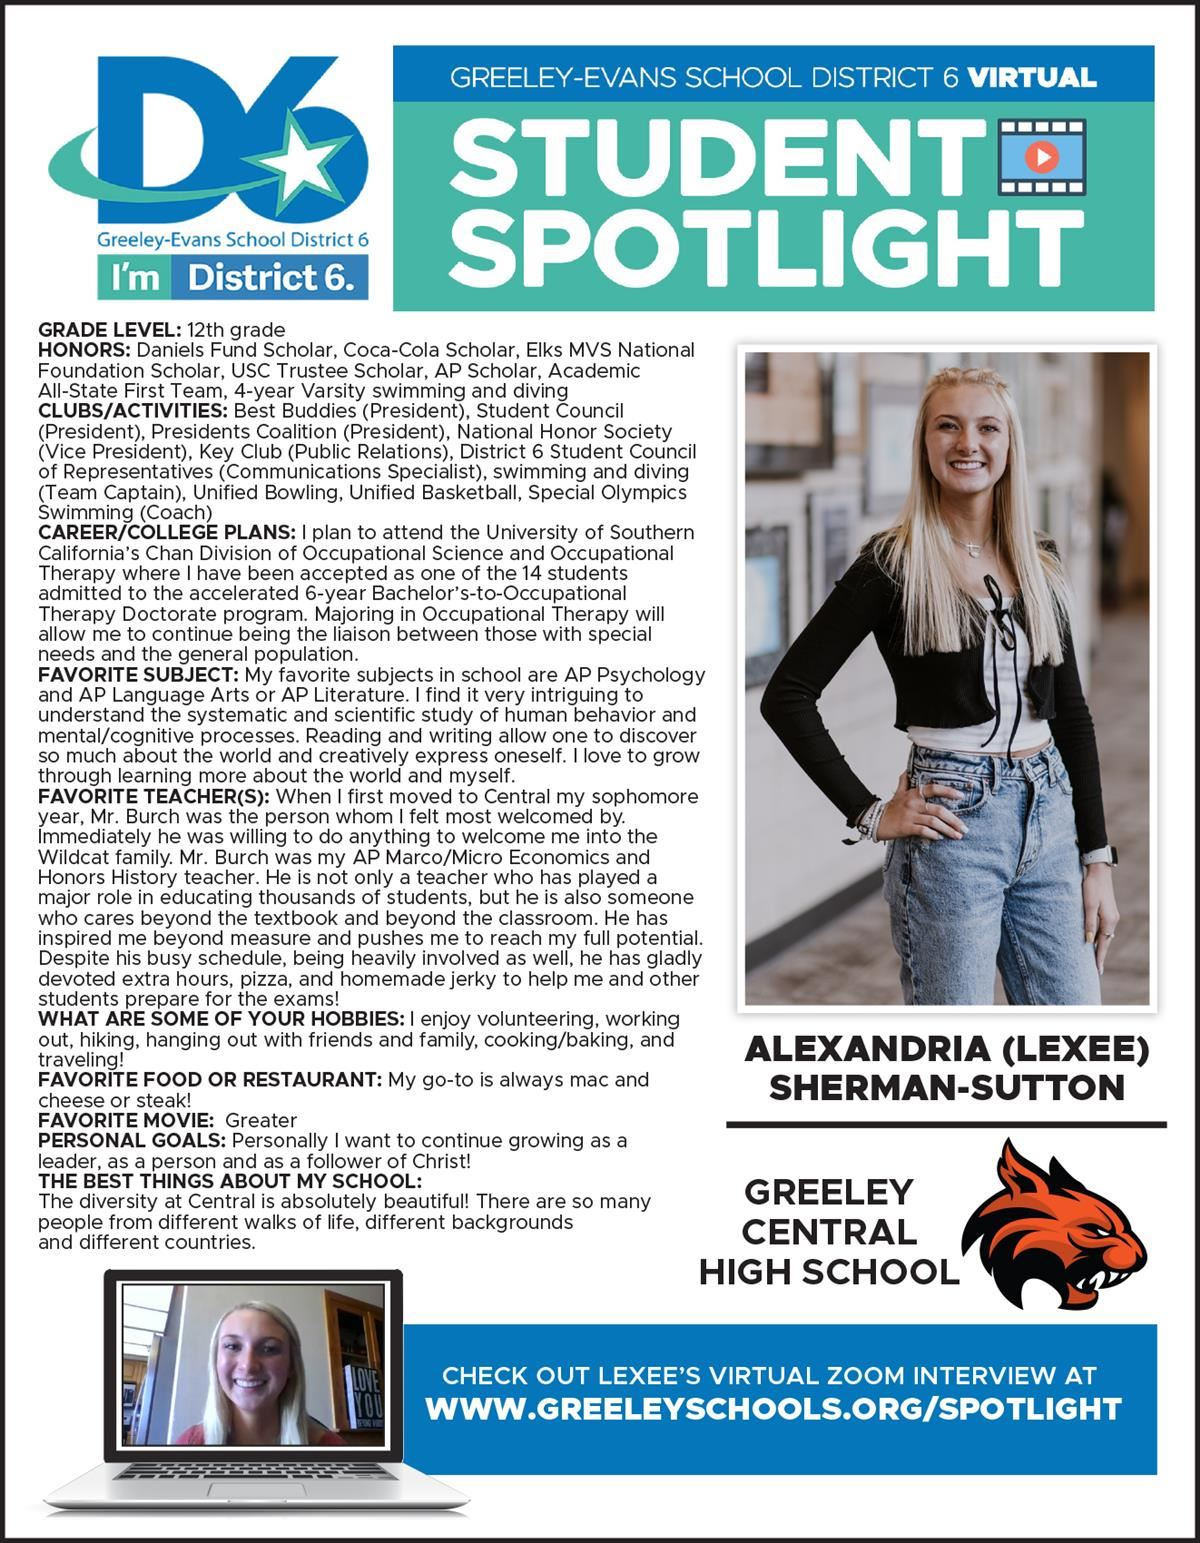 Student Spotlight Lexee Sherman-Sutton Infographic 2021